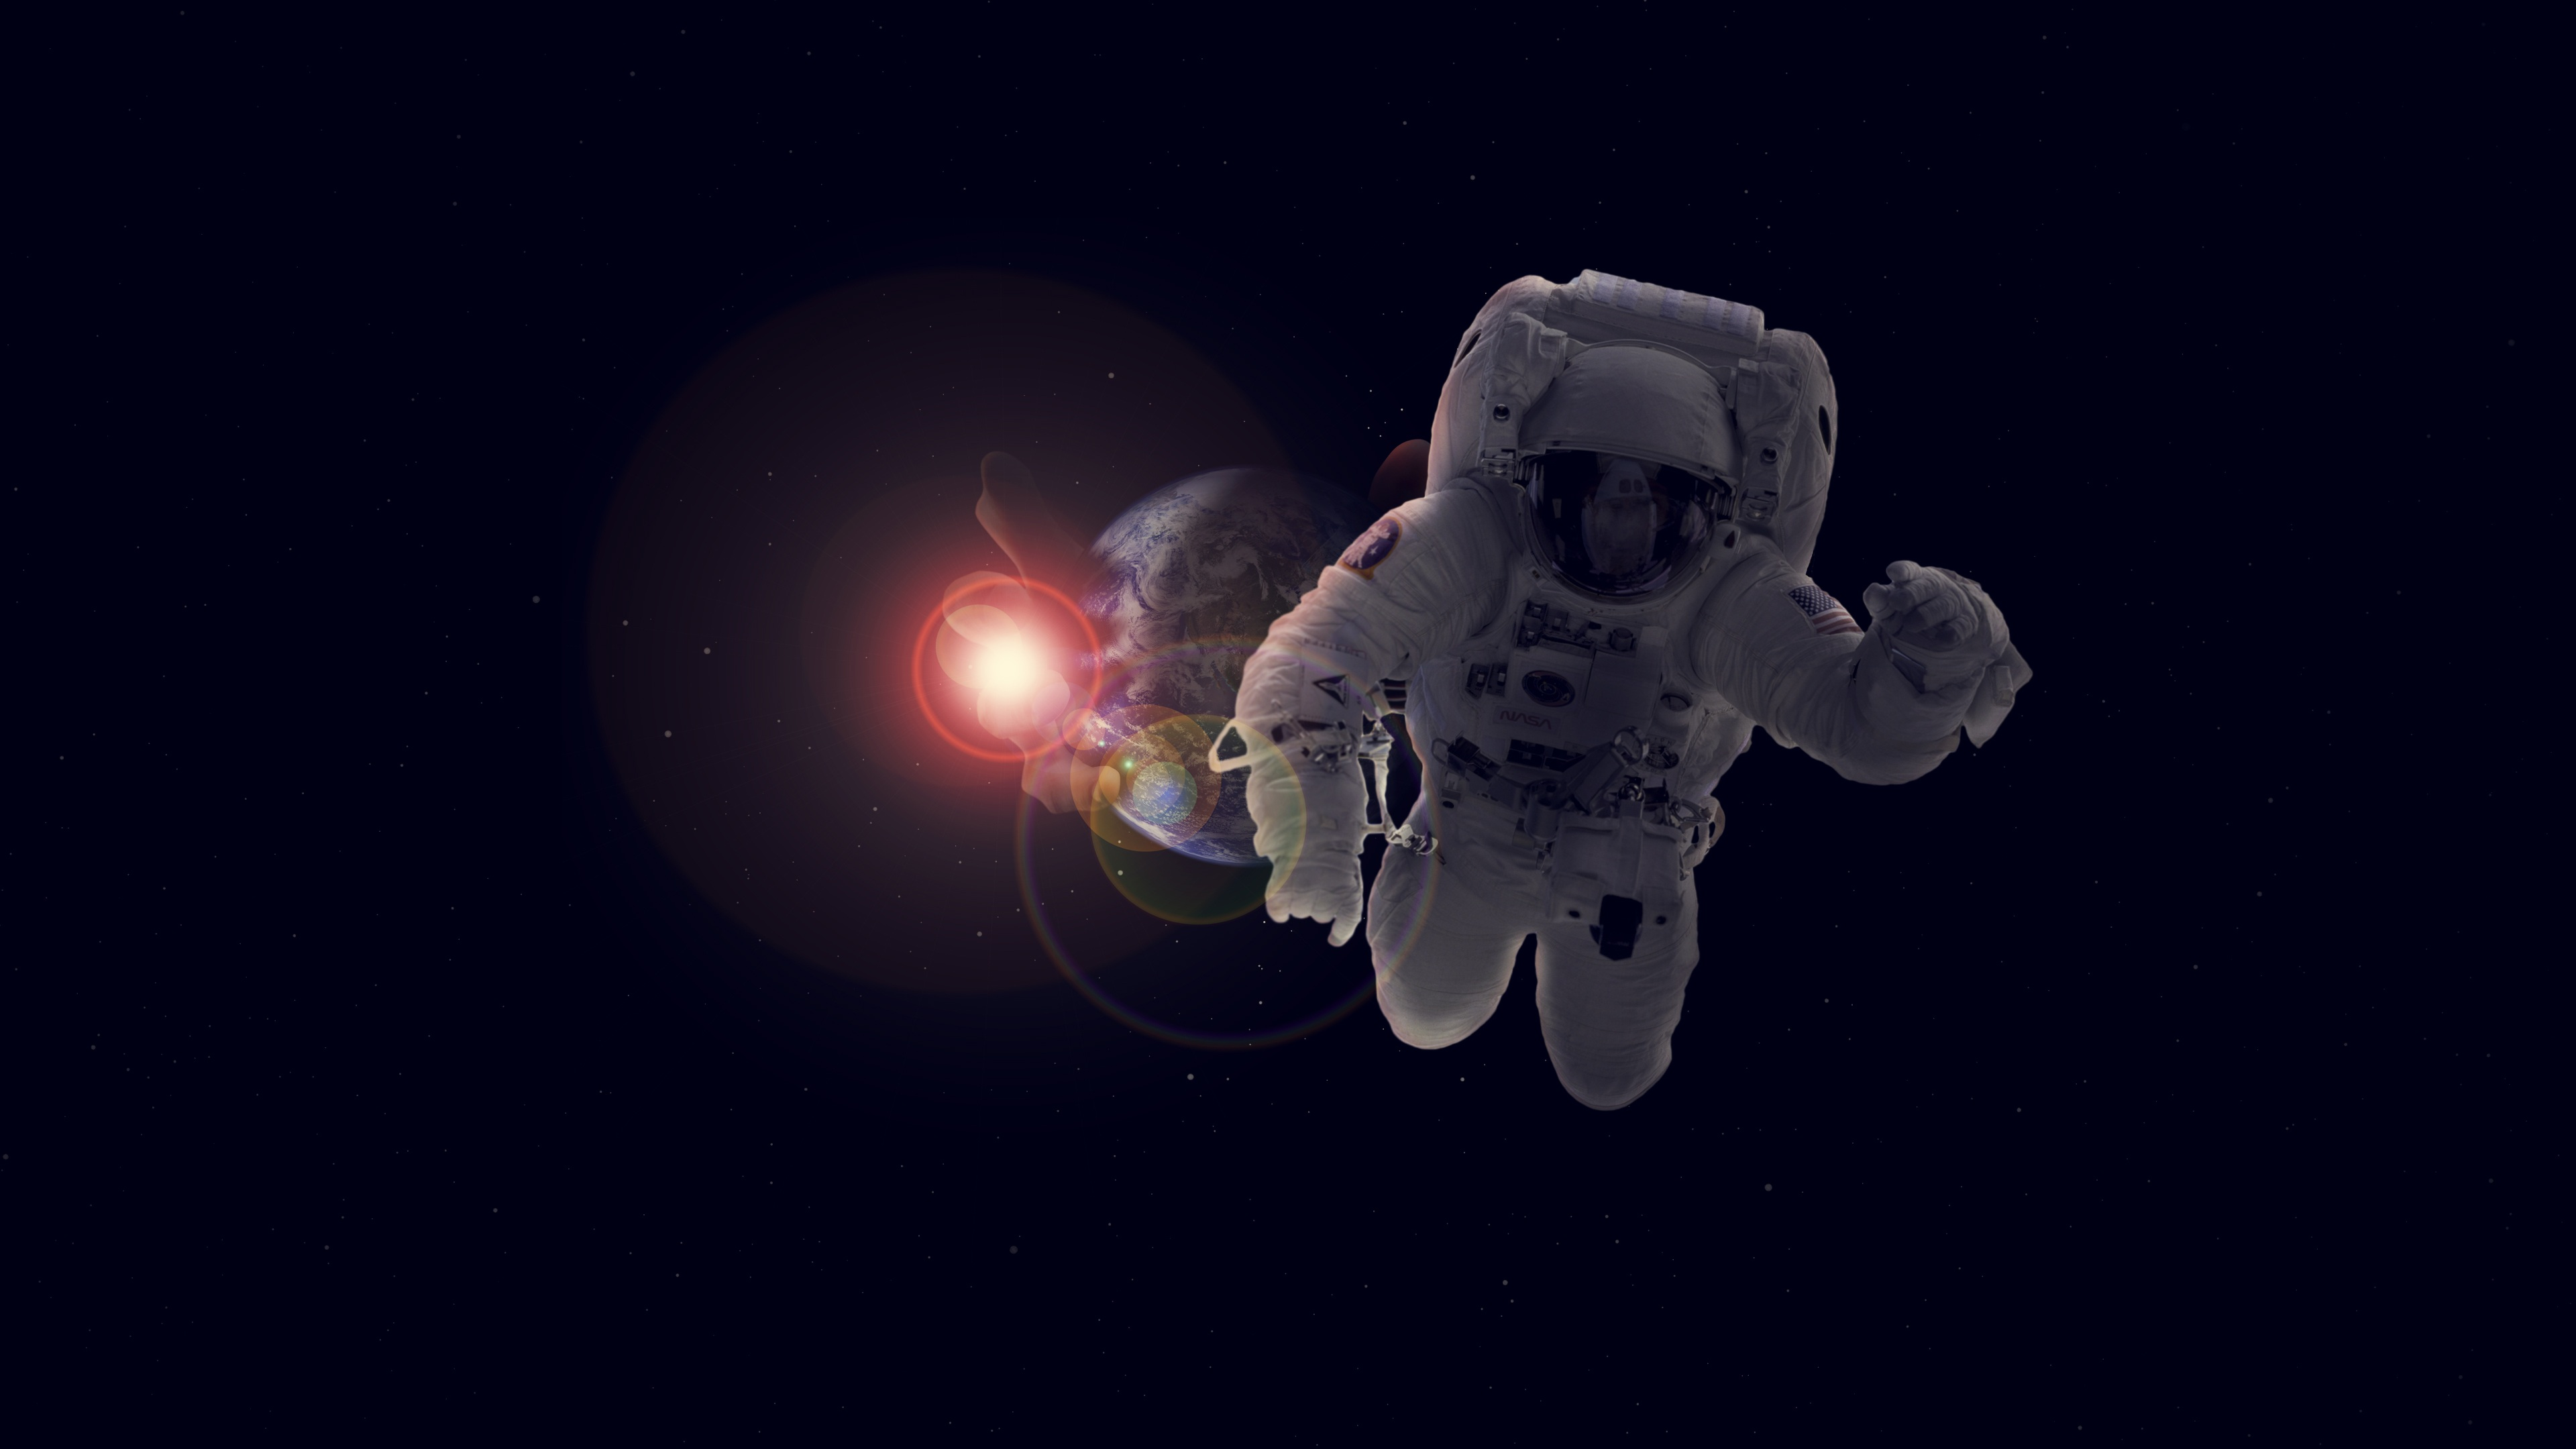 Astronaut In Space 4k Ultra Hd Wallpaper Background Image 3840x2160 Id 1038315 Wallpaper Abyss